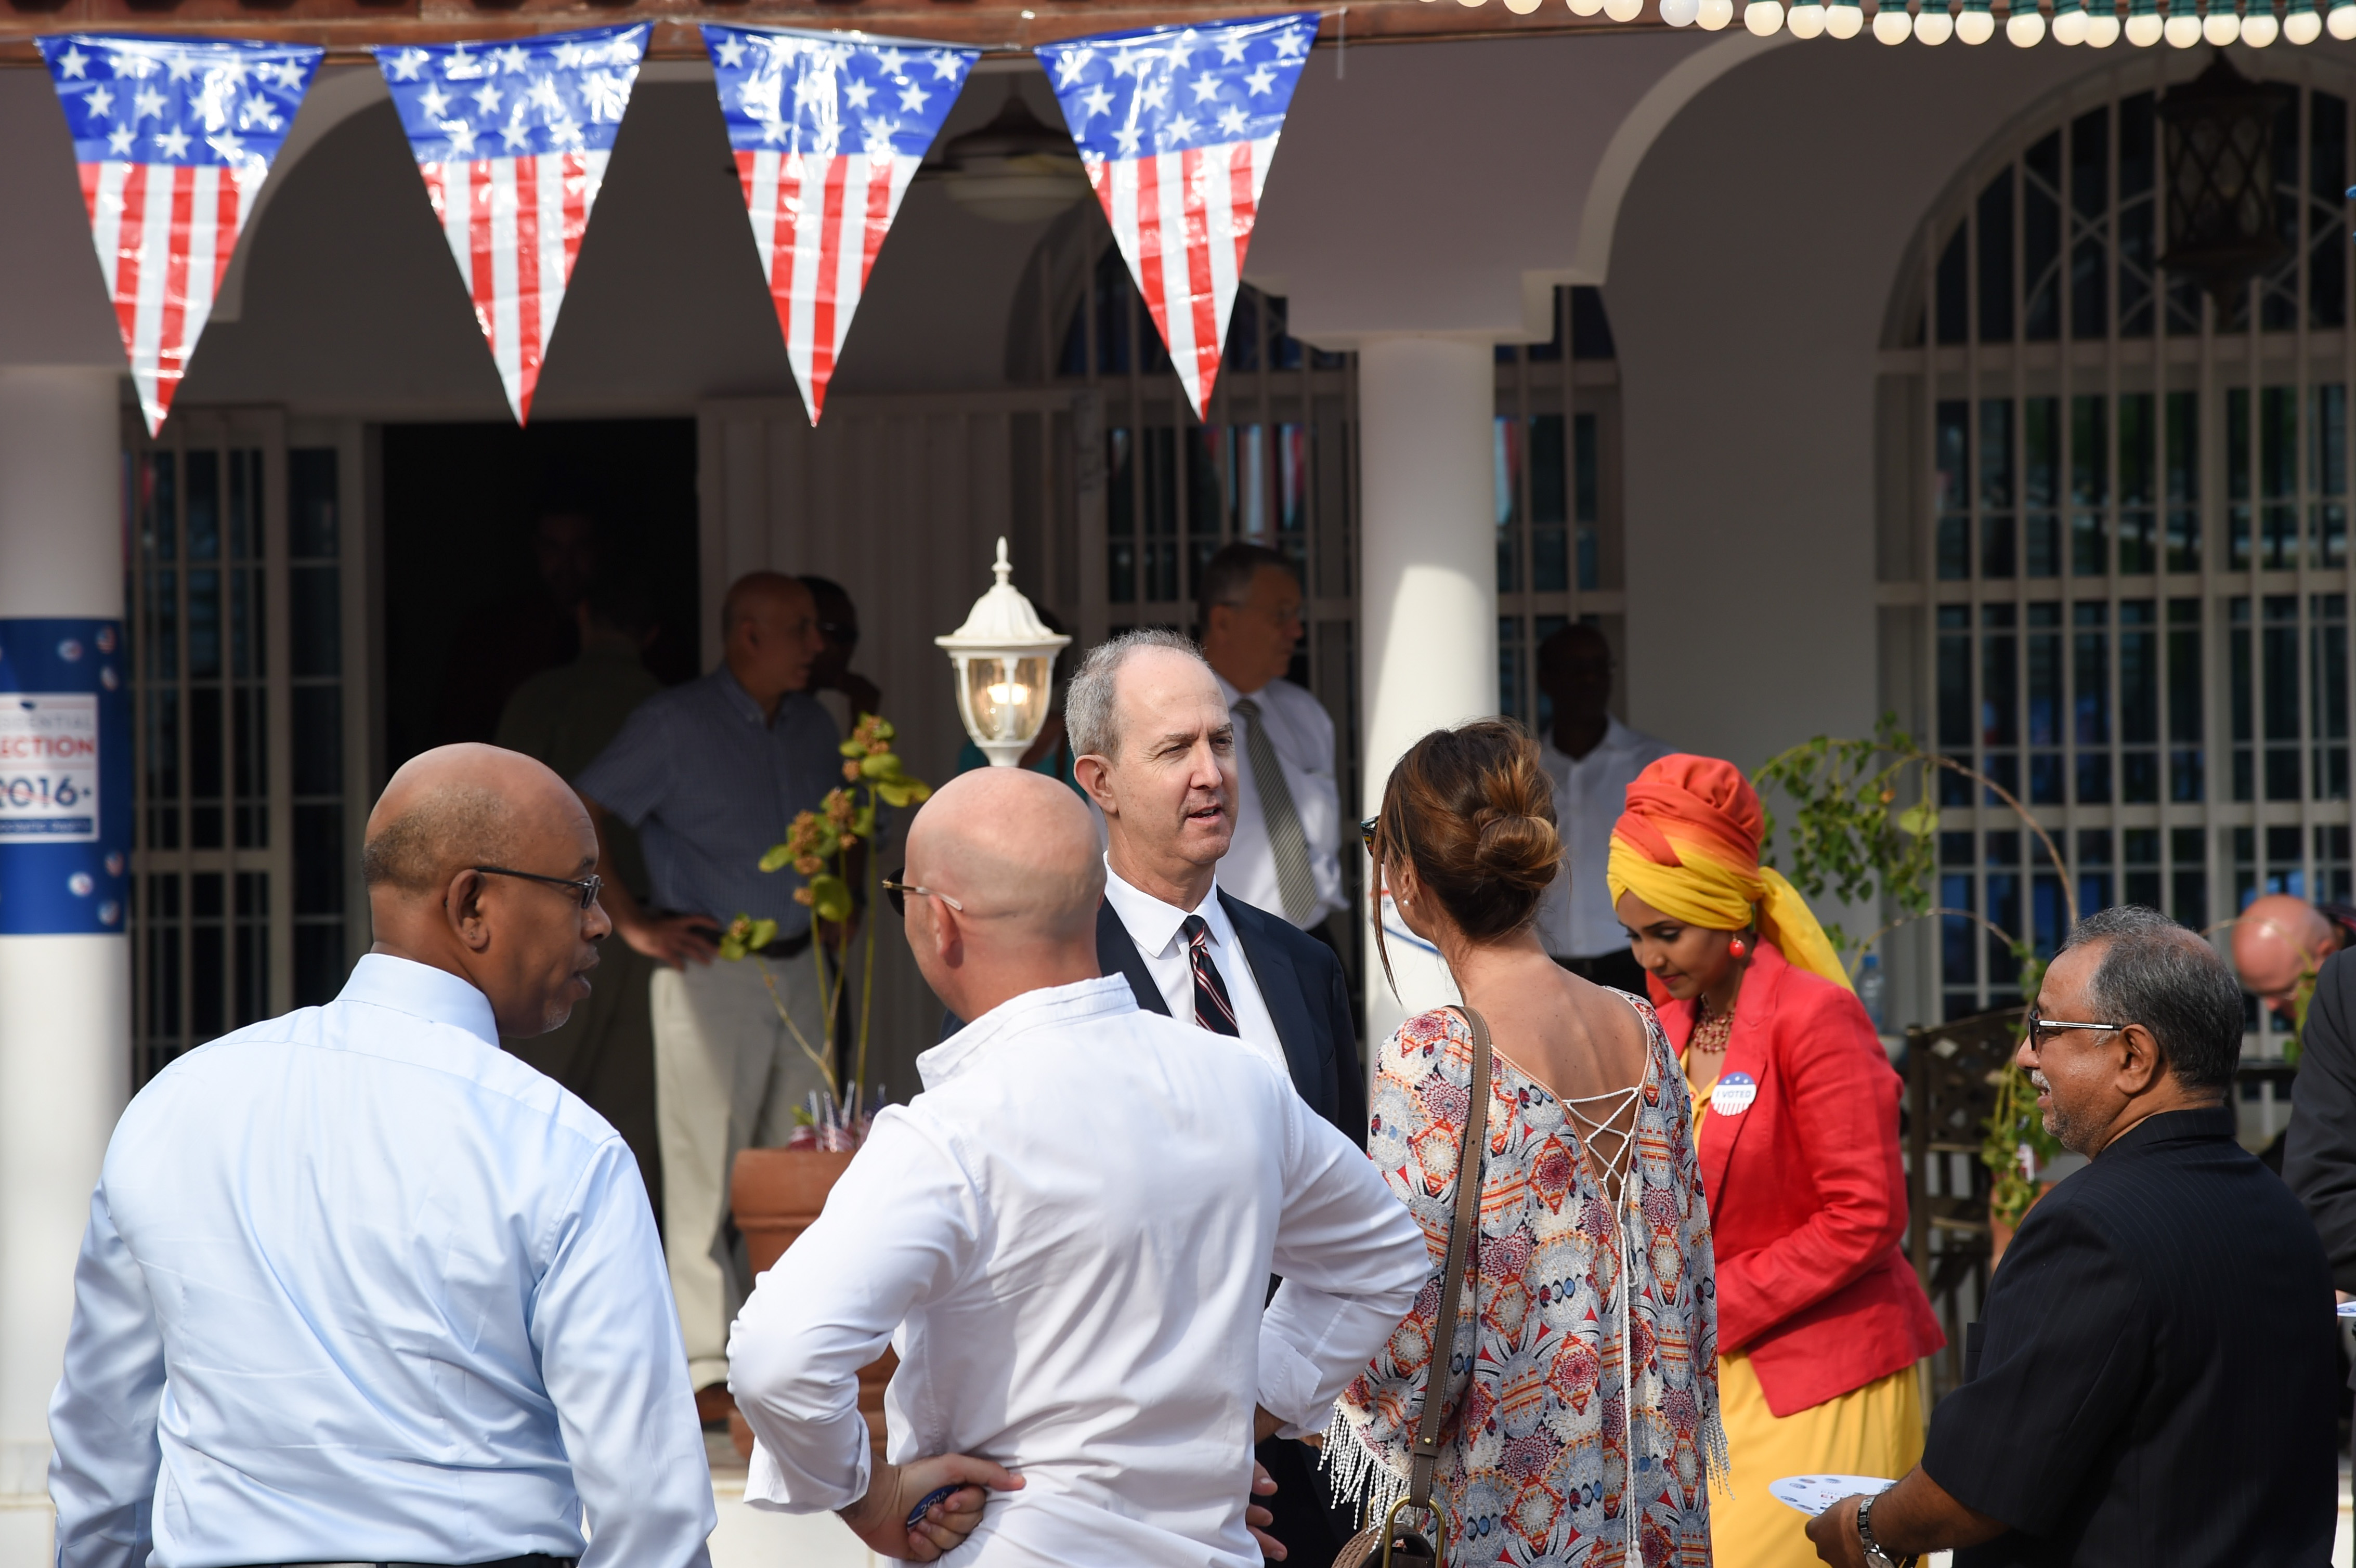 Thomas P. Kelly III, U.S. Ambassador to Djibouti, greets guests at his home during an Election Day breakfast, Nov. 10, 2016, in Djibouti, Djibouti. The event allowed political leaders, American community members, youth leaders, and members of the business community to participate in a celebration of American values and traditions. (U.S. Air National Guard photo by Staff Sgt. Penny Snoozy)